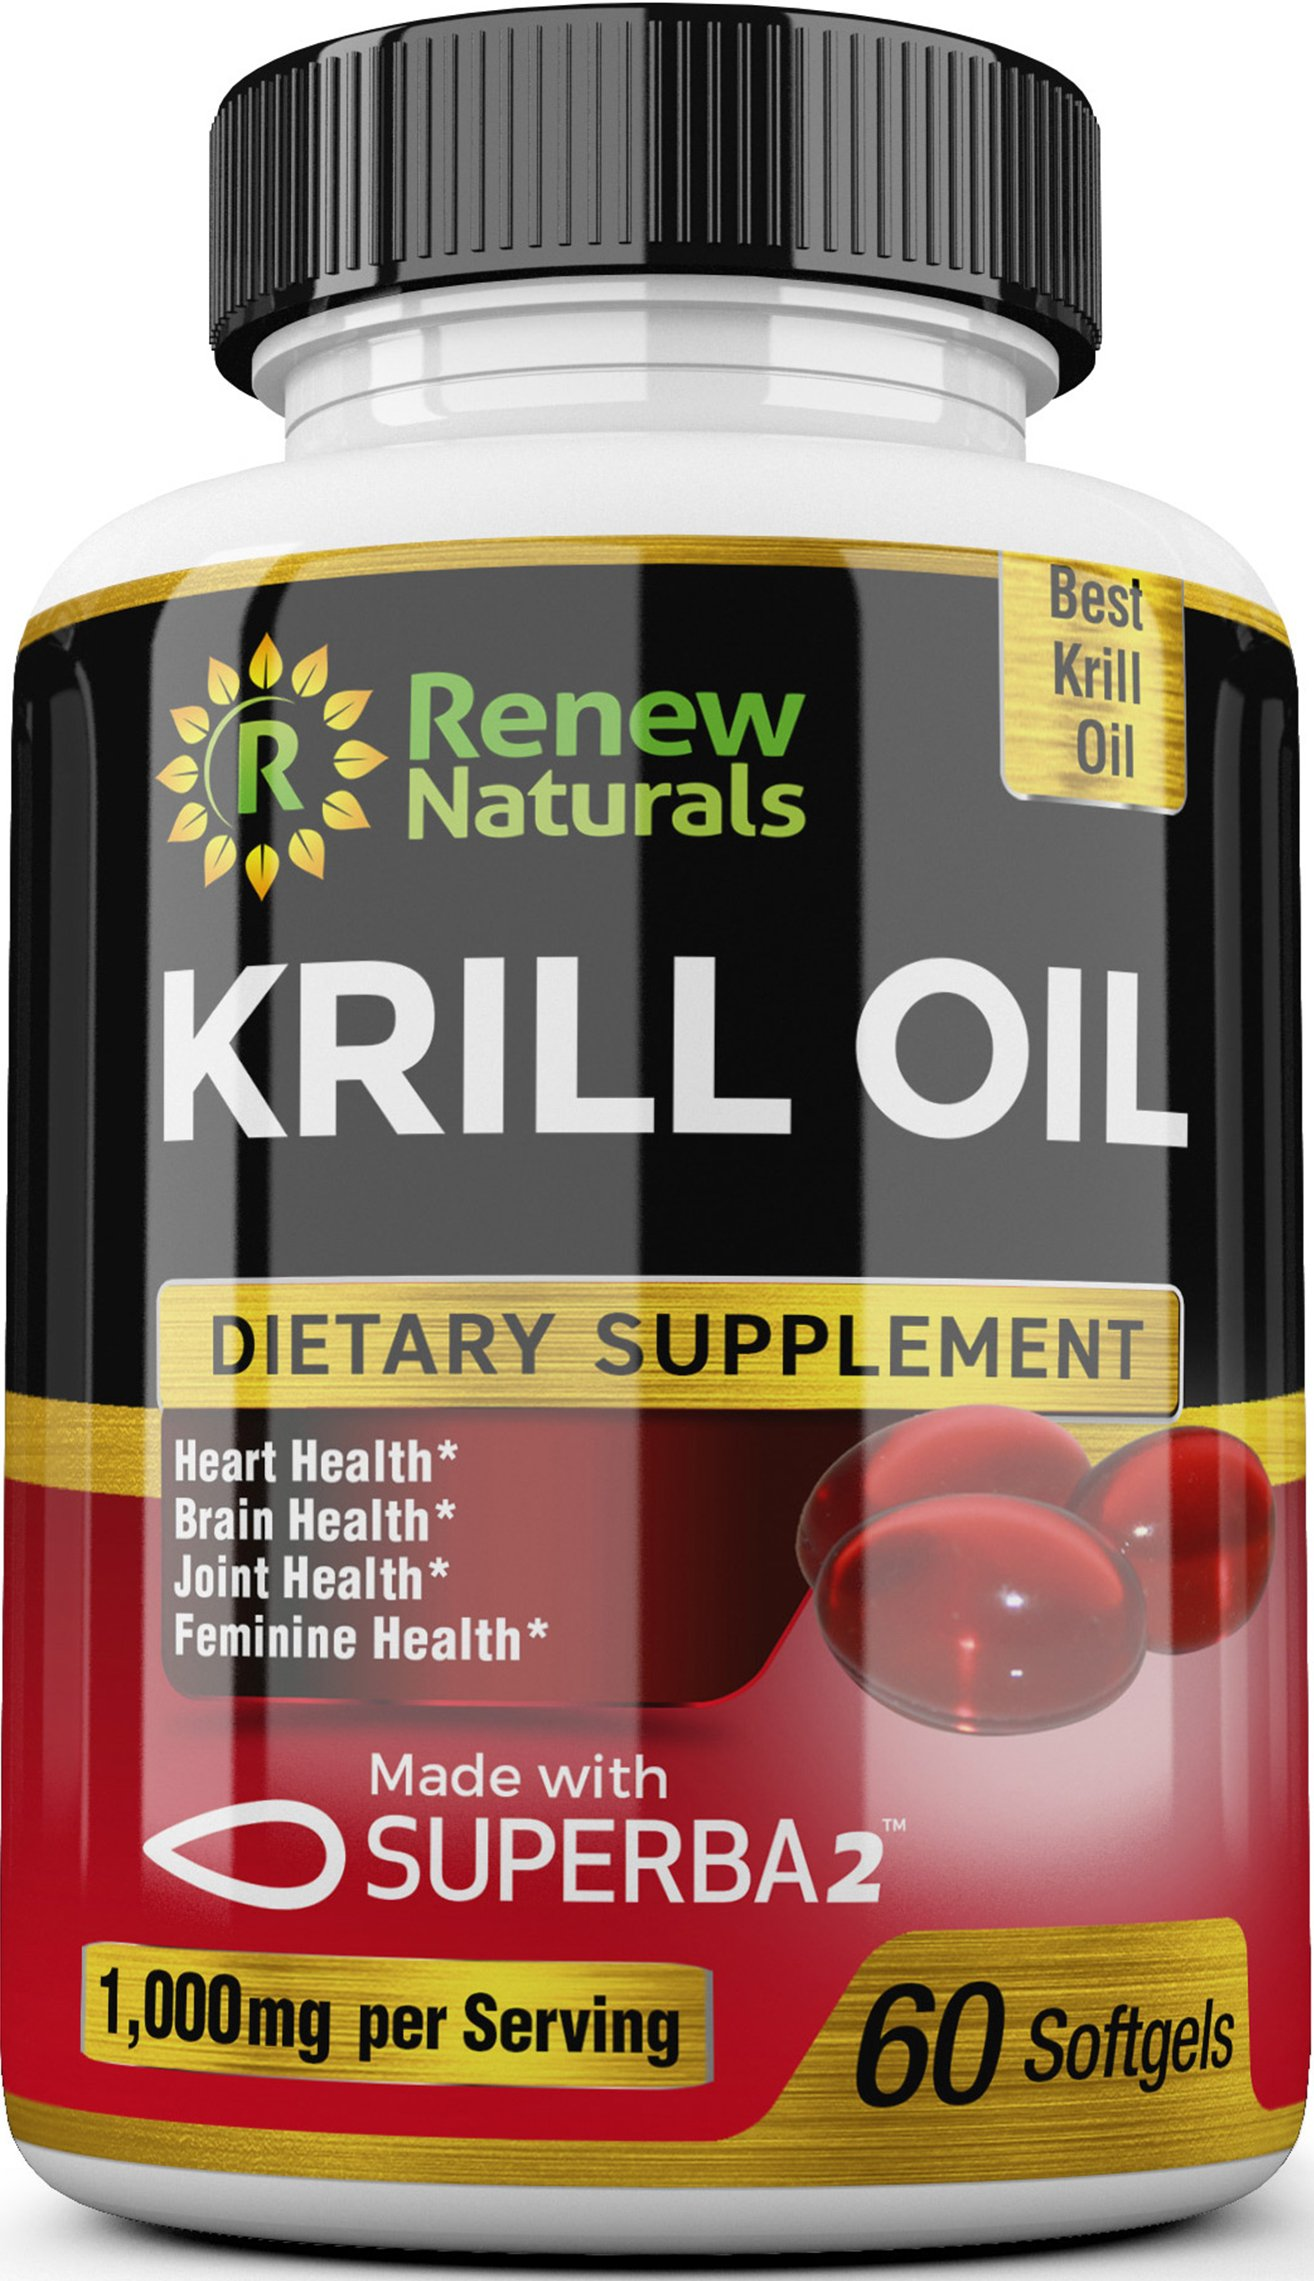 Antarctic Krill Oil 1000 mg Serving with Omega-3s EPA DHA Astaxanthin Supports Healthy Heart Brain Joints 60 Softgels 100% Money Back Guarantee! by Renew Naturals